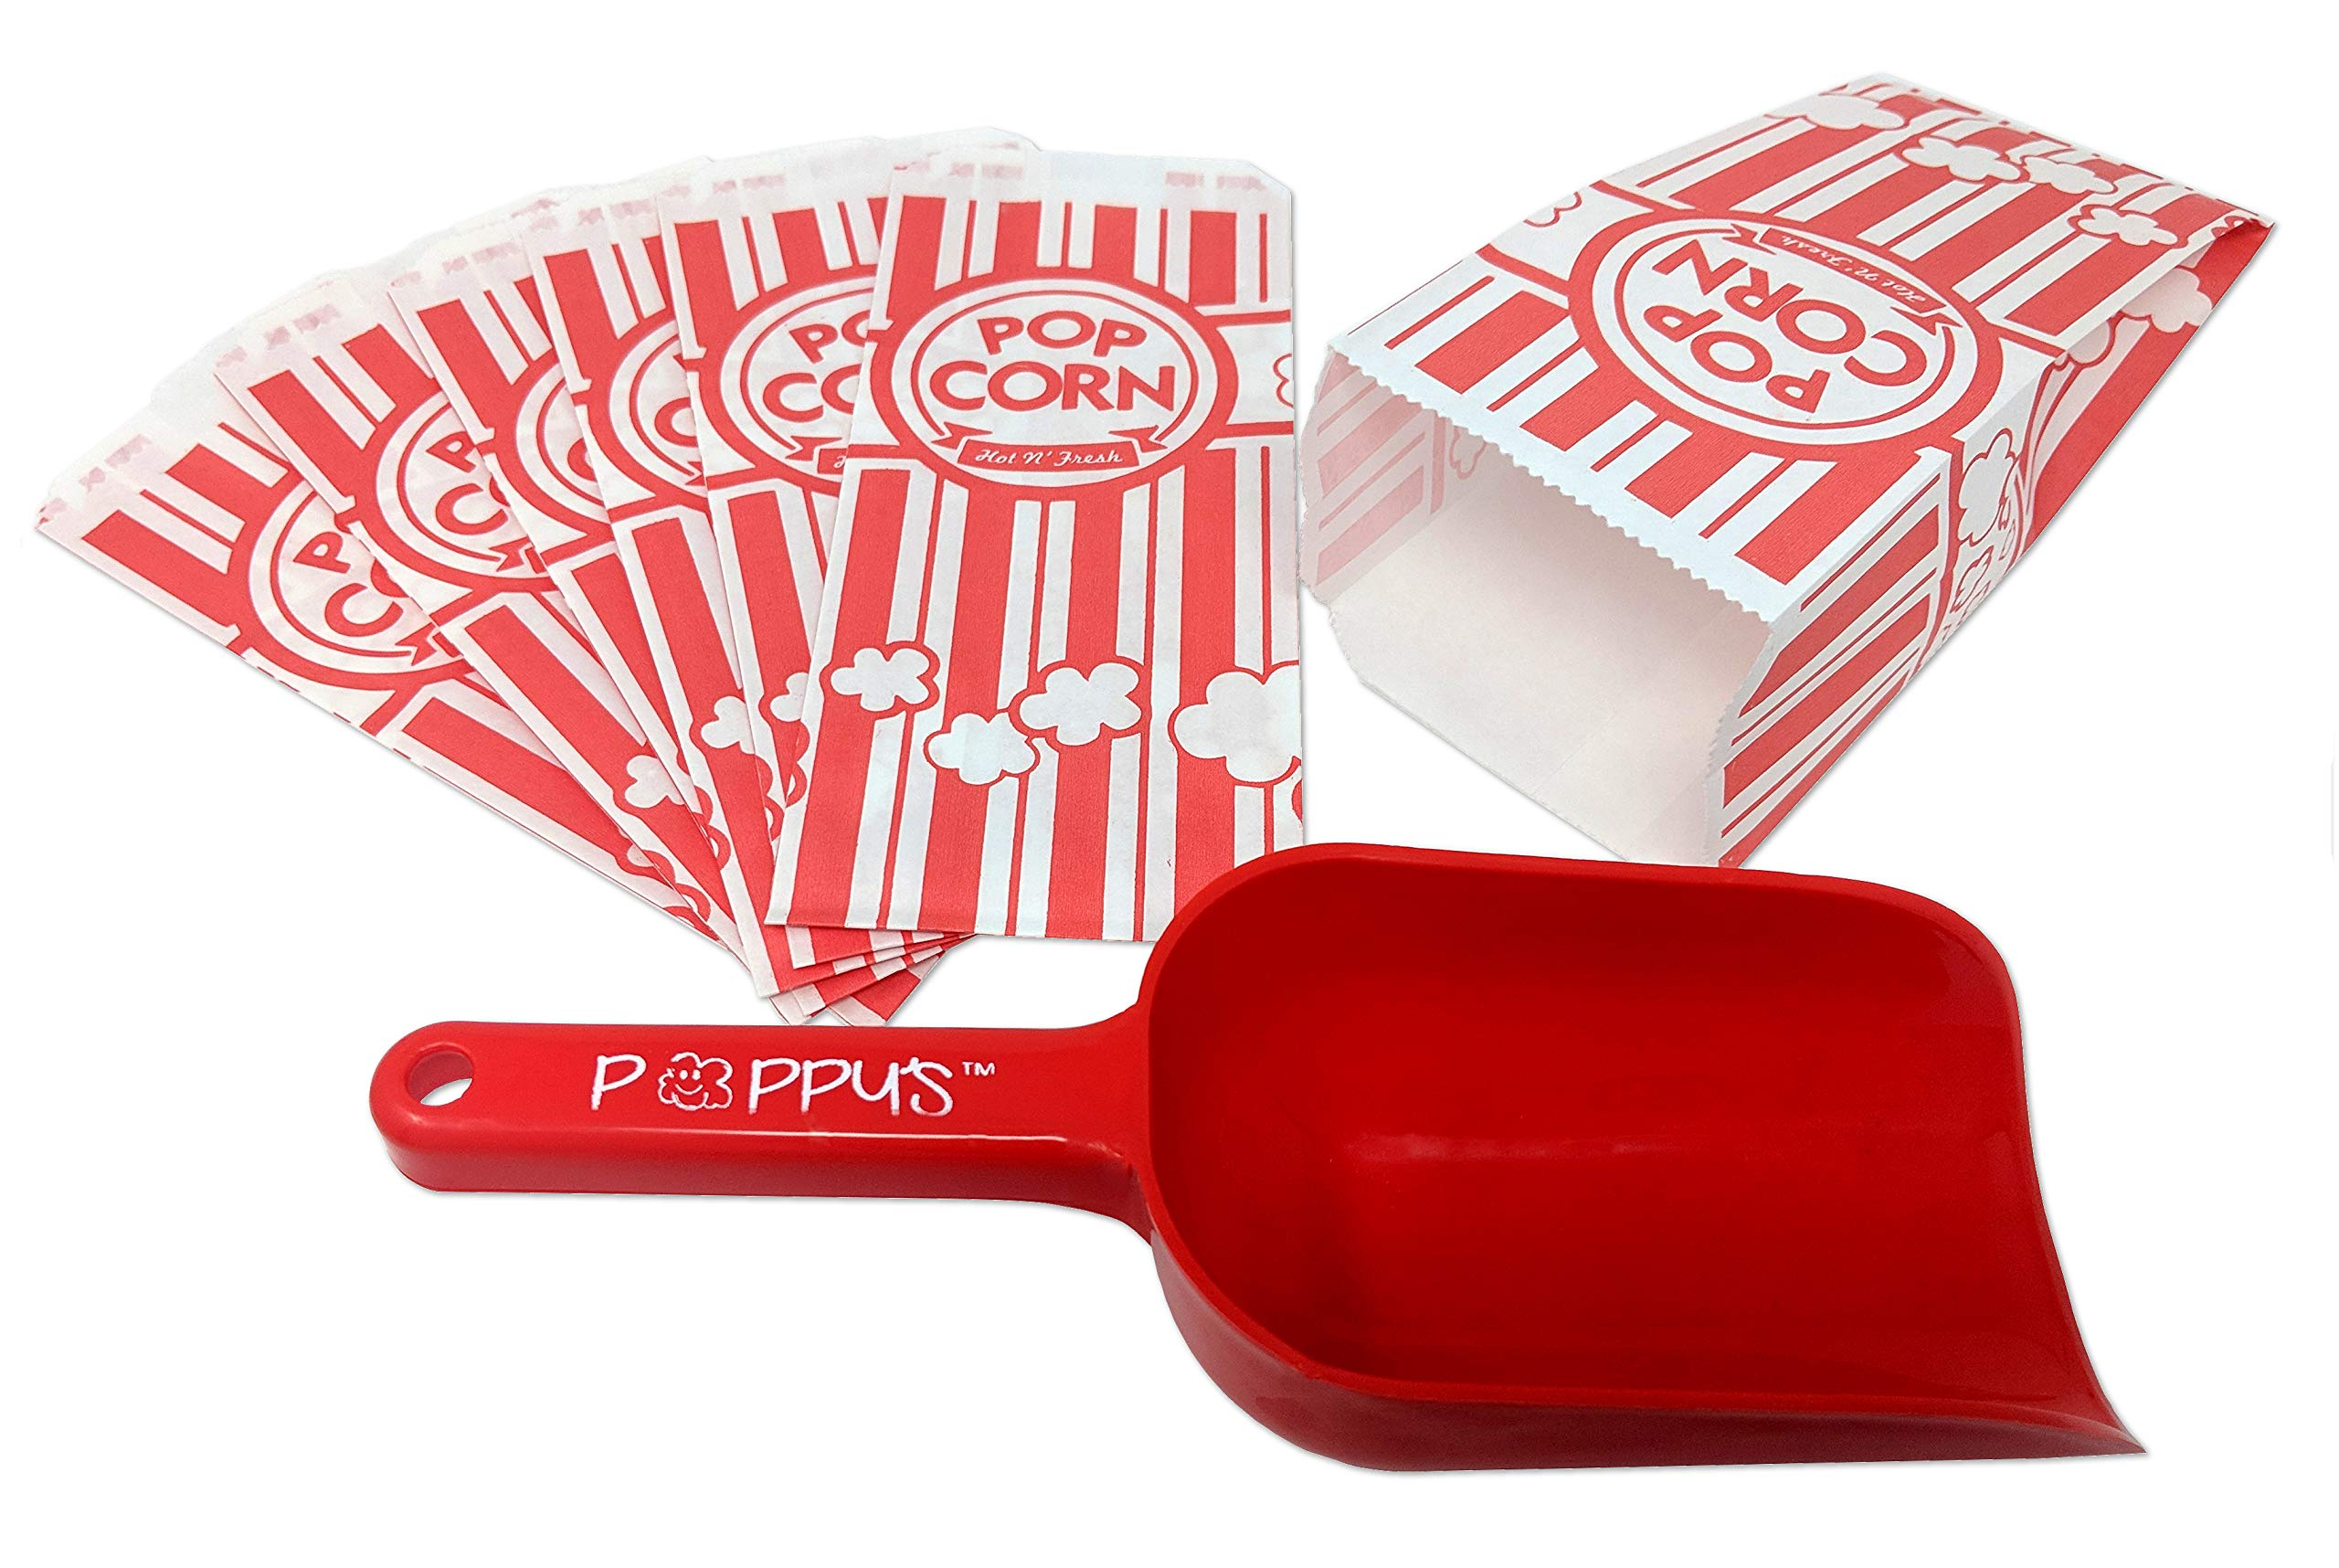 Poppy's Carnival Style Popcorn Bags and Popcorn Scoop Bundle - Poppy's Scoop and 200 1 oz Paper Carnival Style Popcorn Bags